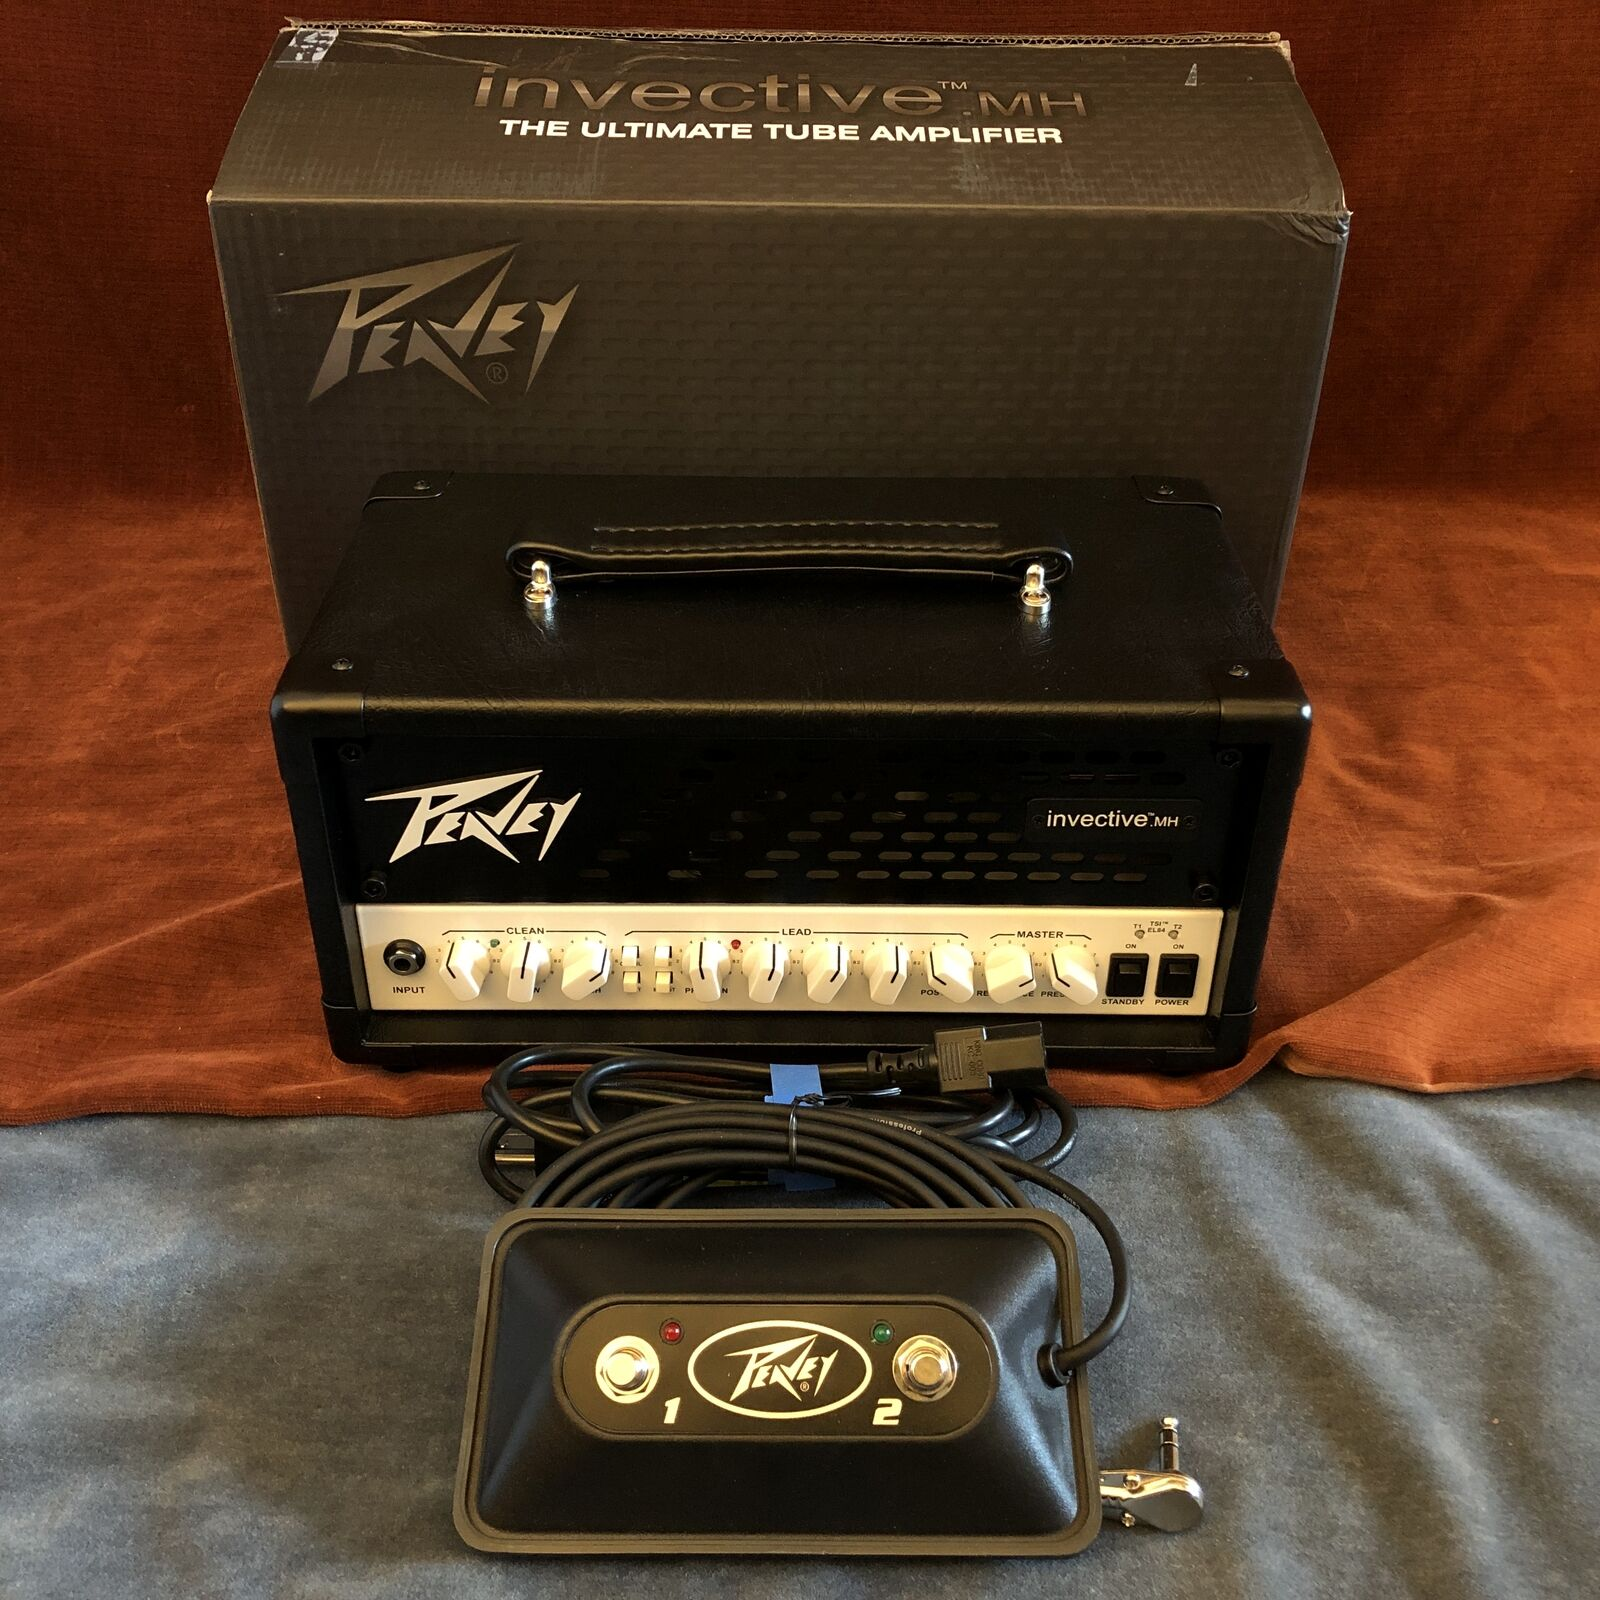 Peavey Invective MH Misha Mansoor Signature 20W Mini Guitar Head w/ Footswitch. Buy it now for 629.00